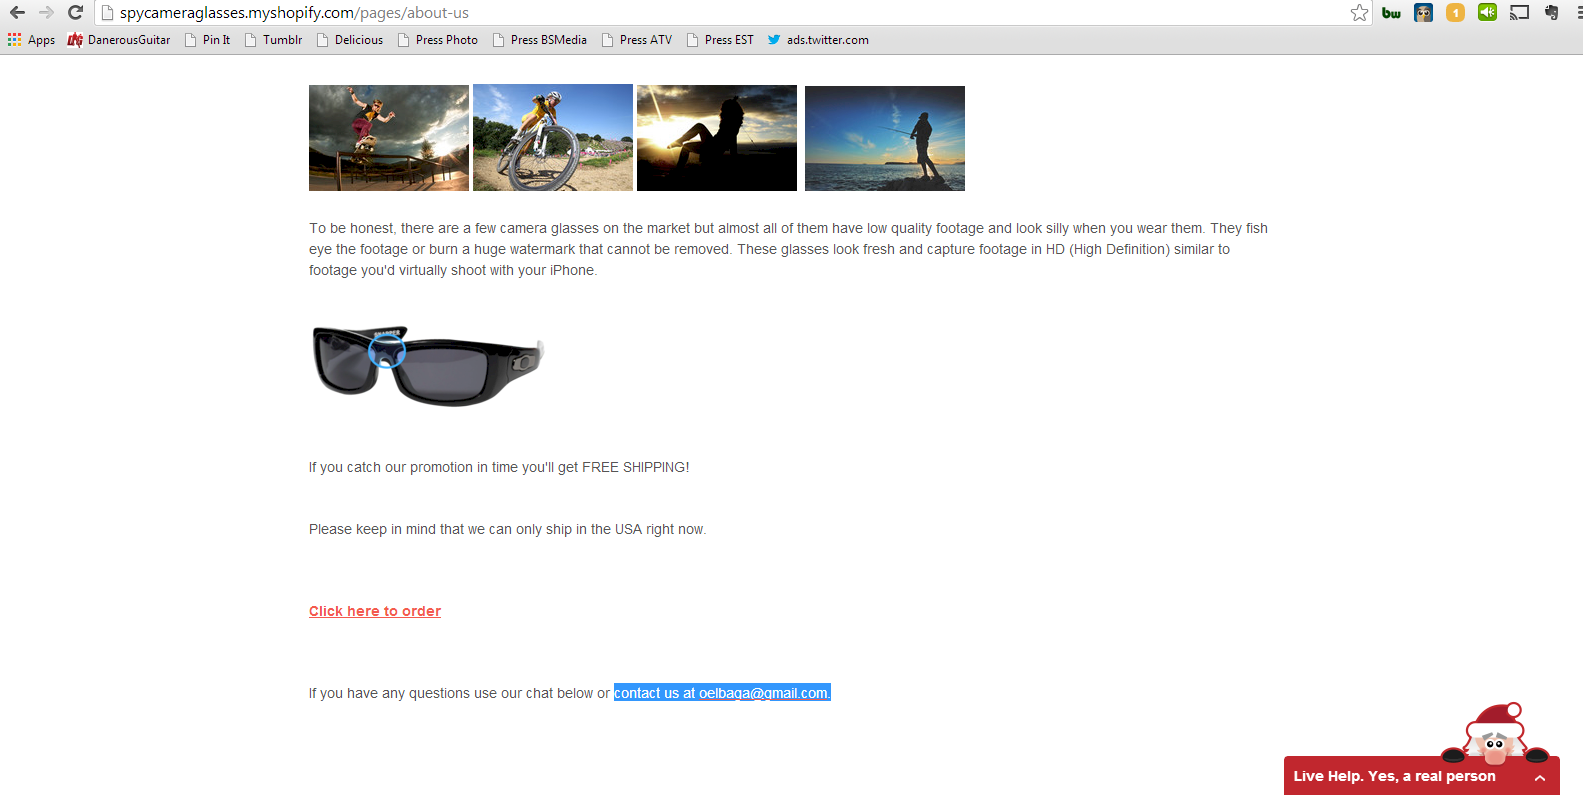 Screenshot of Camera Sunglasses My Shopify About Us Page